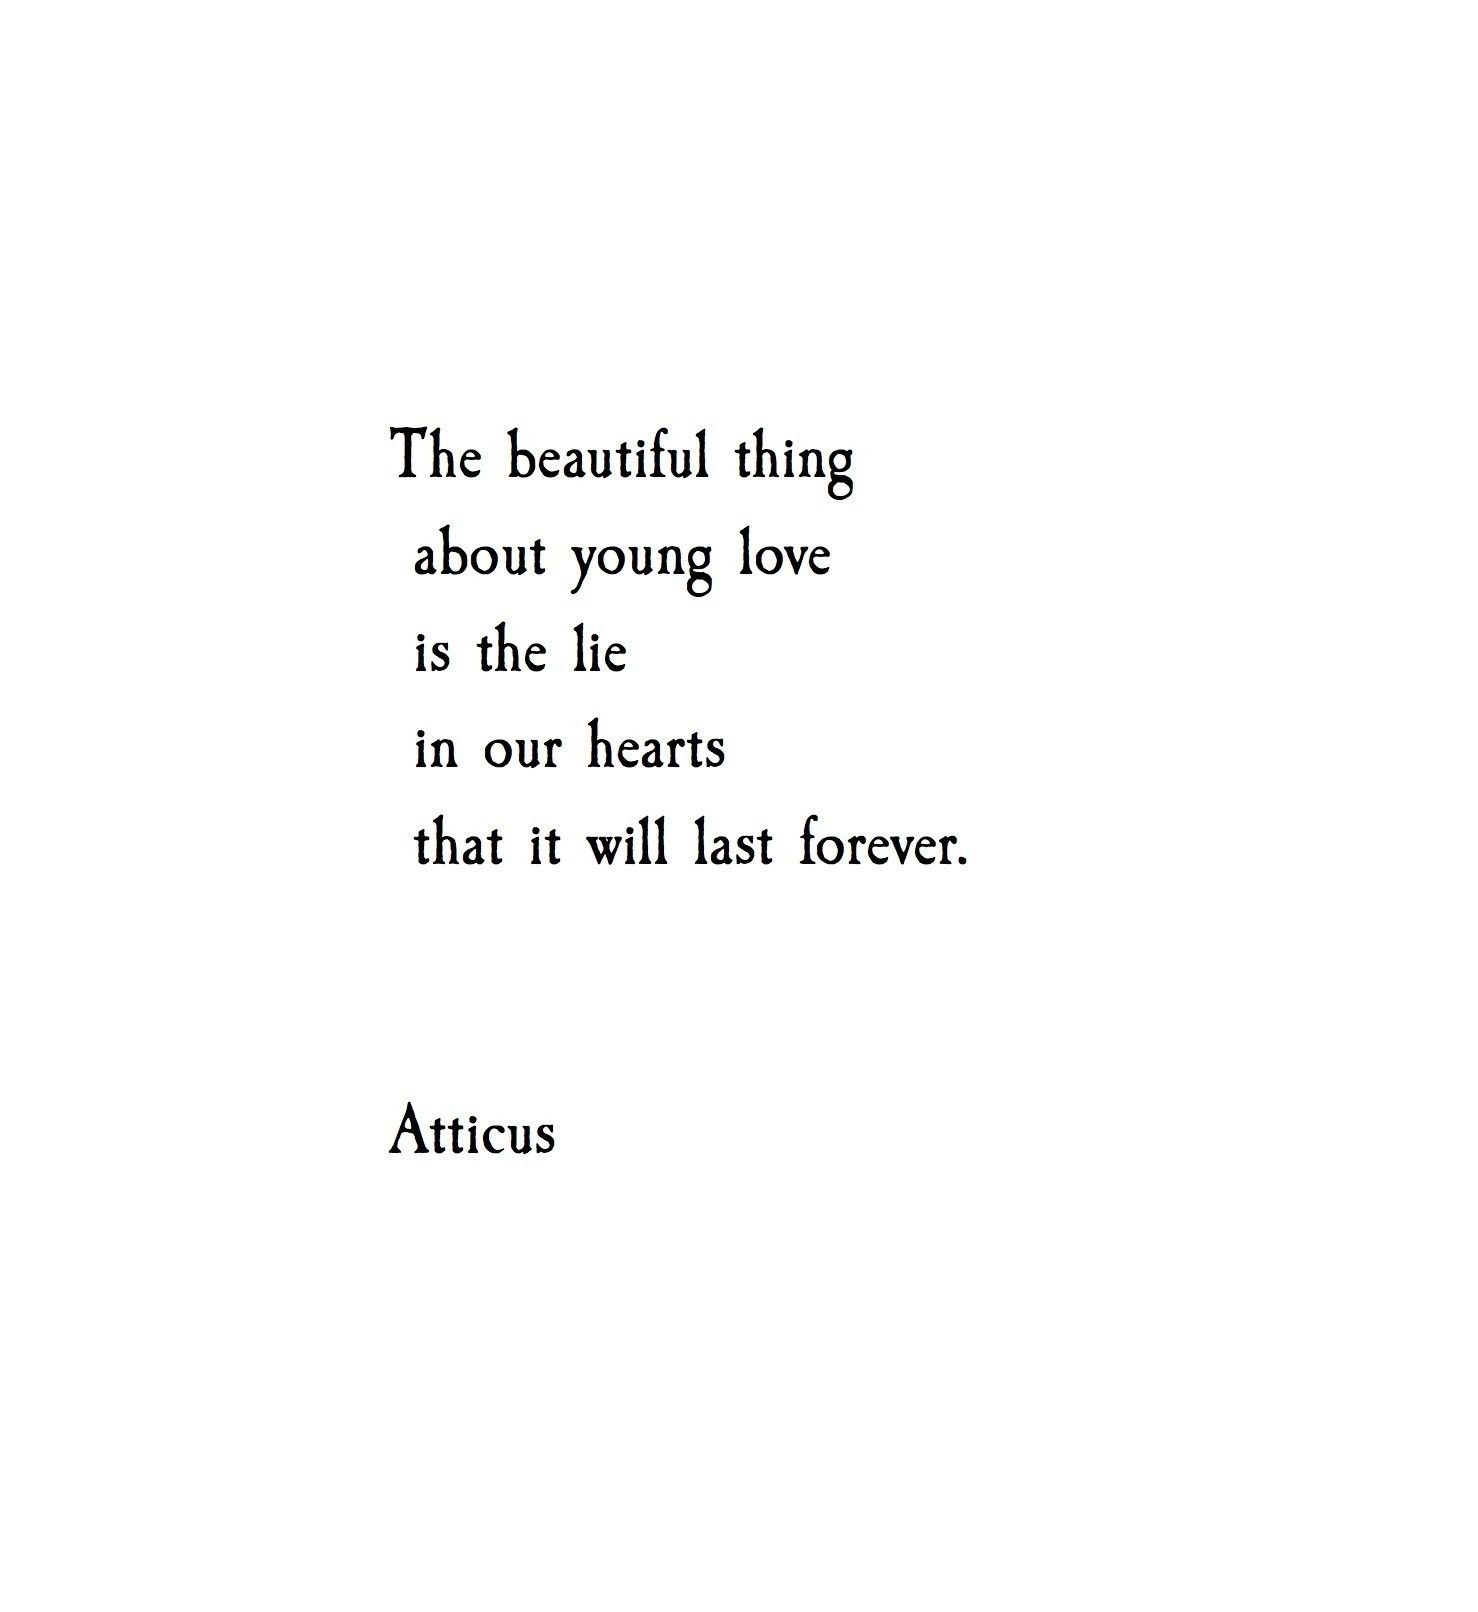 Quotes About Young Love Young Love' Atticuspoetry #atticuspoetry #beautiful #atticus